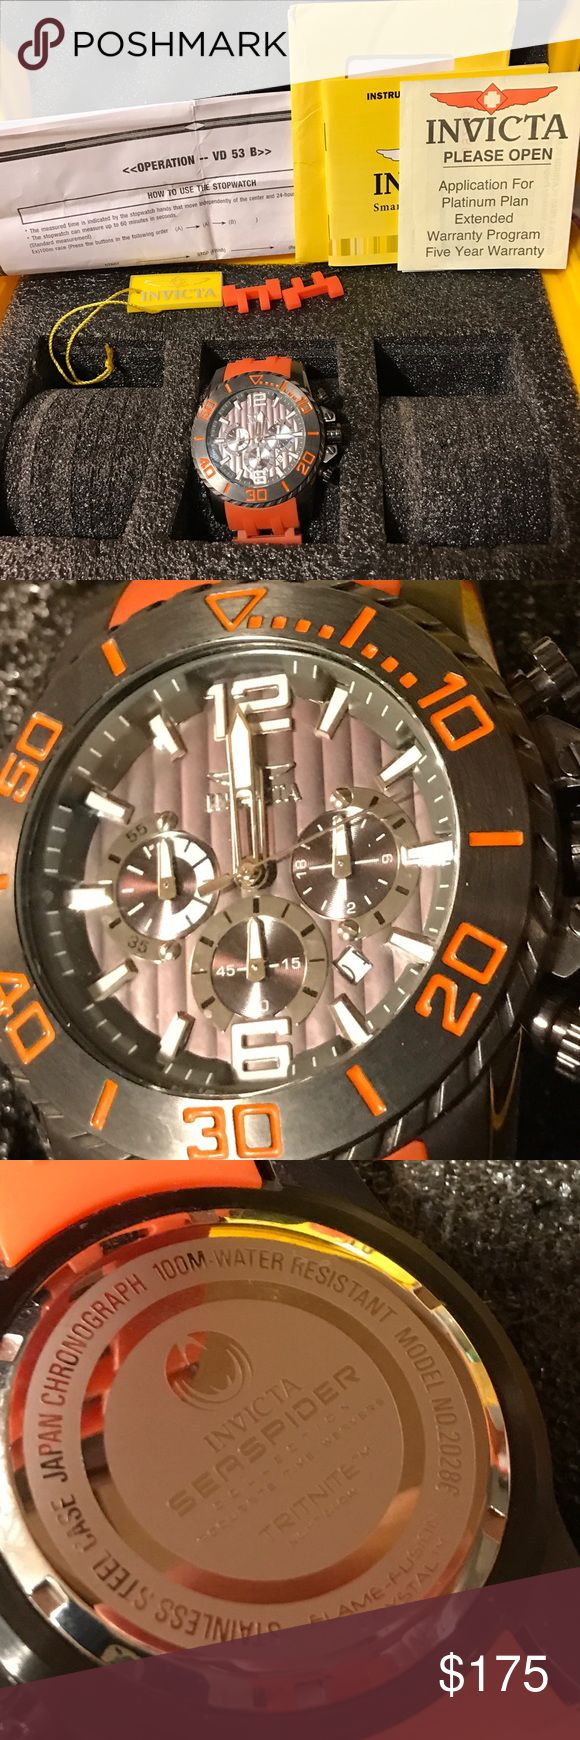 Orange Invicta Sea Spider with 3-slot dive case Worn once or twice and only for a few hours. 2 links were removed but are included.   Invicta Sea Spider  model 20286  Men's Watch  Movement Components: Japan Caliber: VD53  Band Material: Polyurethane, Stainless Steel Tone: Orange, Gunmetal Length: 215mm Size: 26mm Buckle: Regular Clasp: Regular  Case and Dial Case Size: 50mm Case Material: Stainless Steel Bezel Material: Stainless Steel Bezel Color: None Crown Type: Push Crystal Type: Flame…